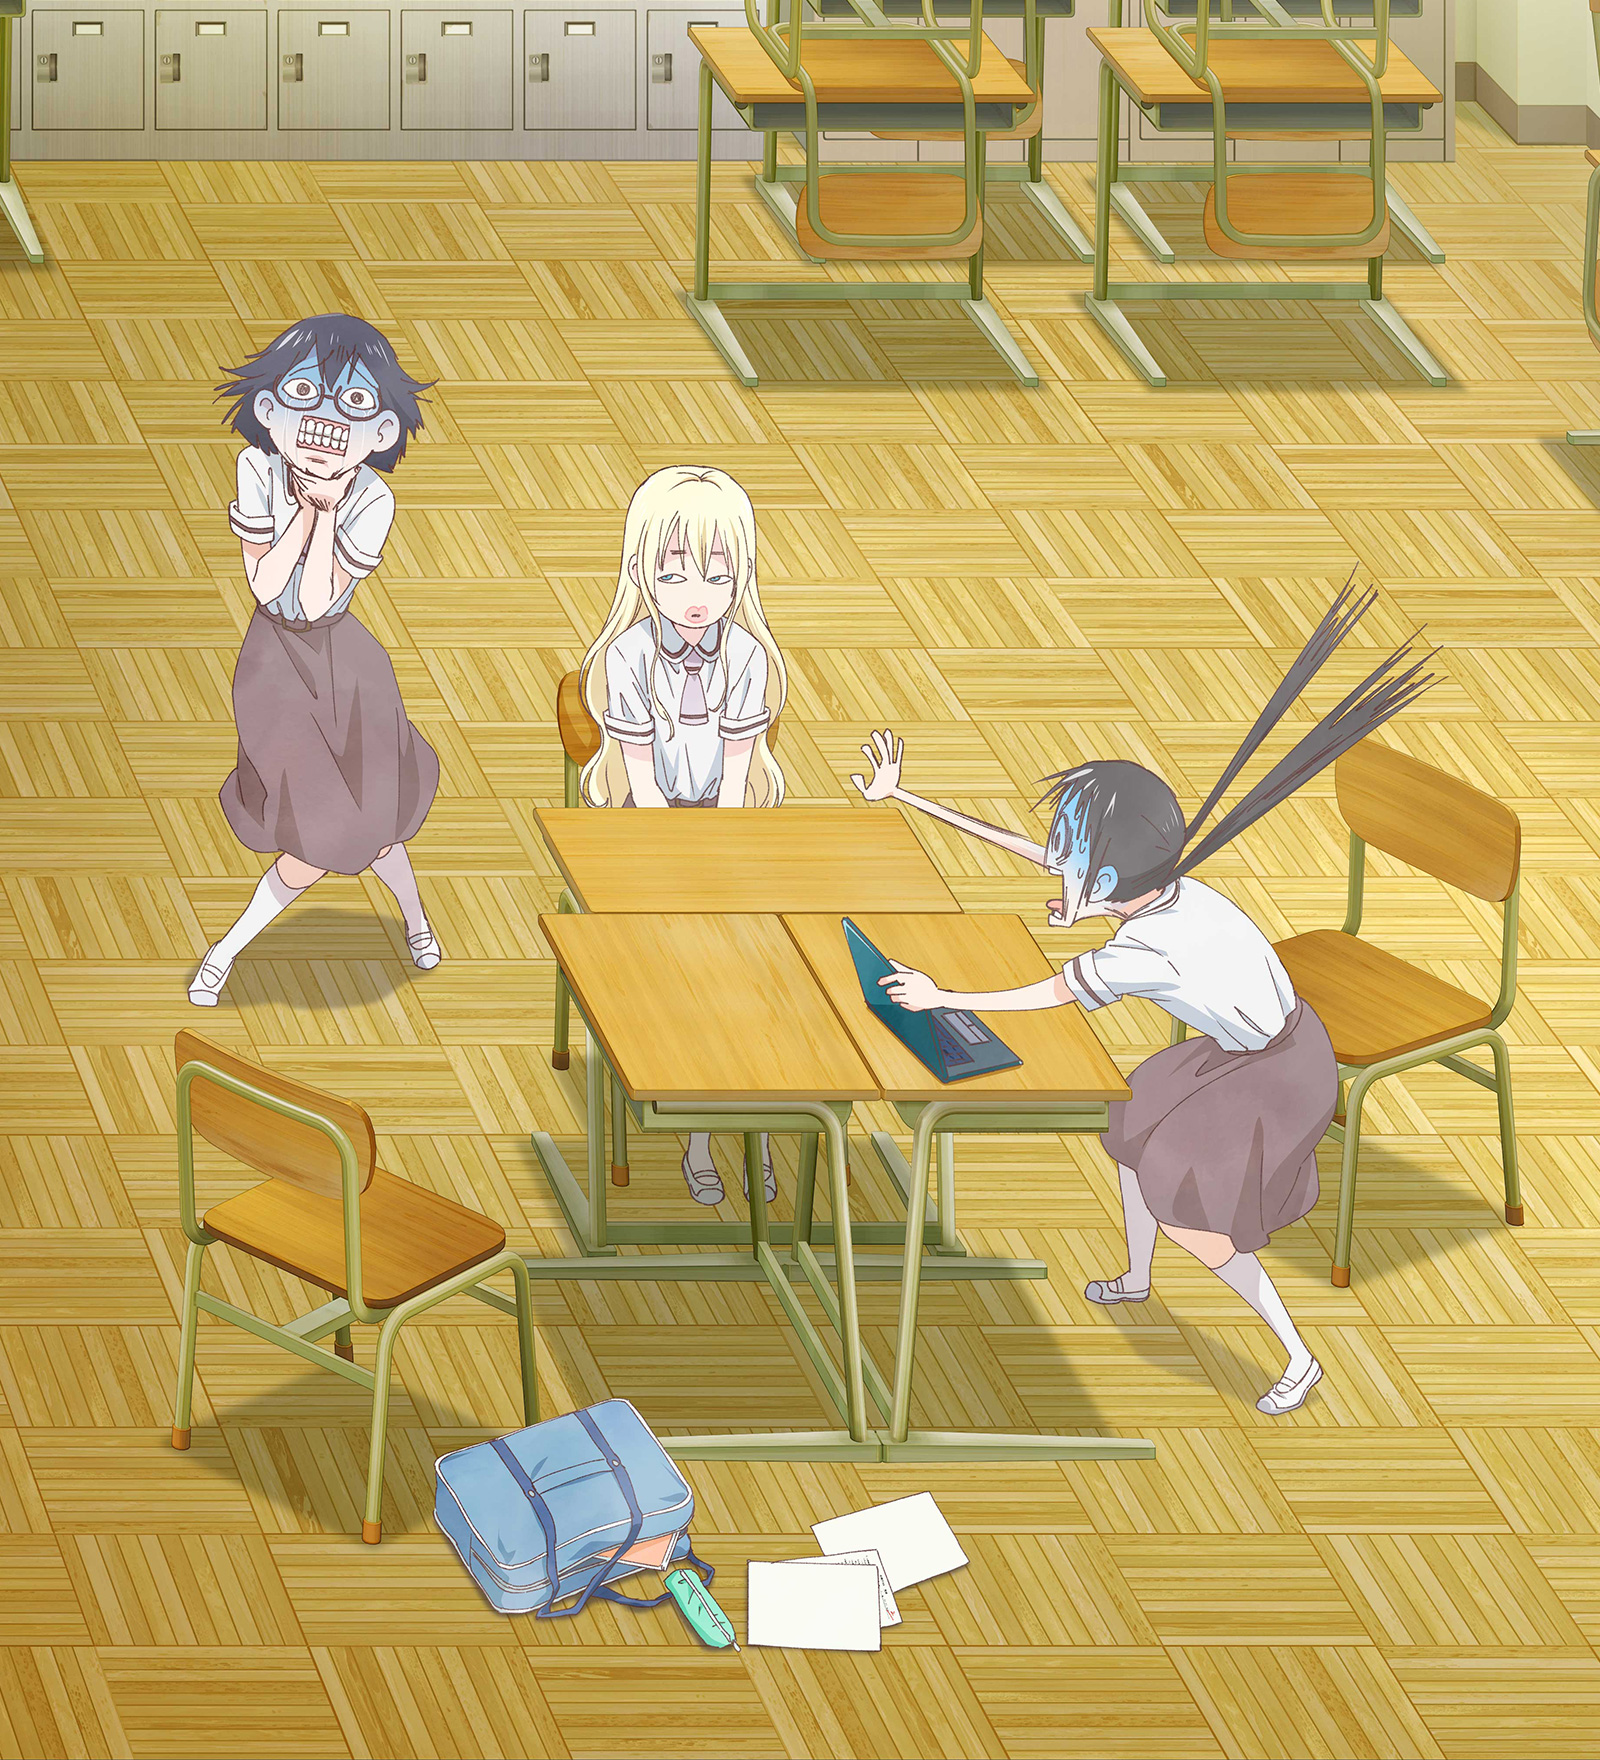 Three Girls Having Fun At School Something About Being A Surreal Gag Comedy Sure Ill Believe It When I See In Any Case Isnt Usually